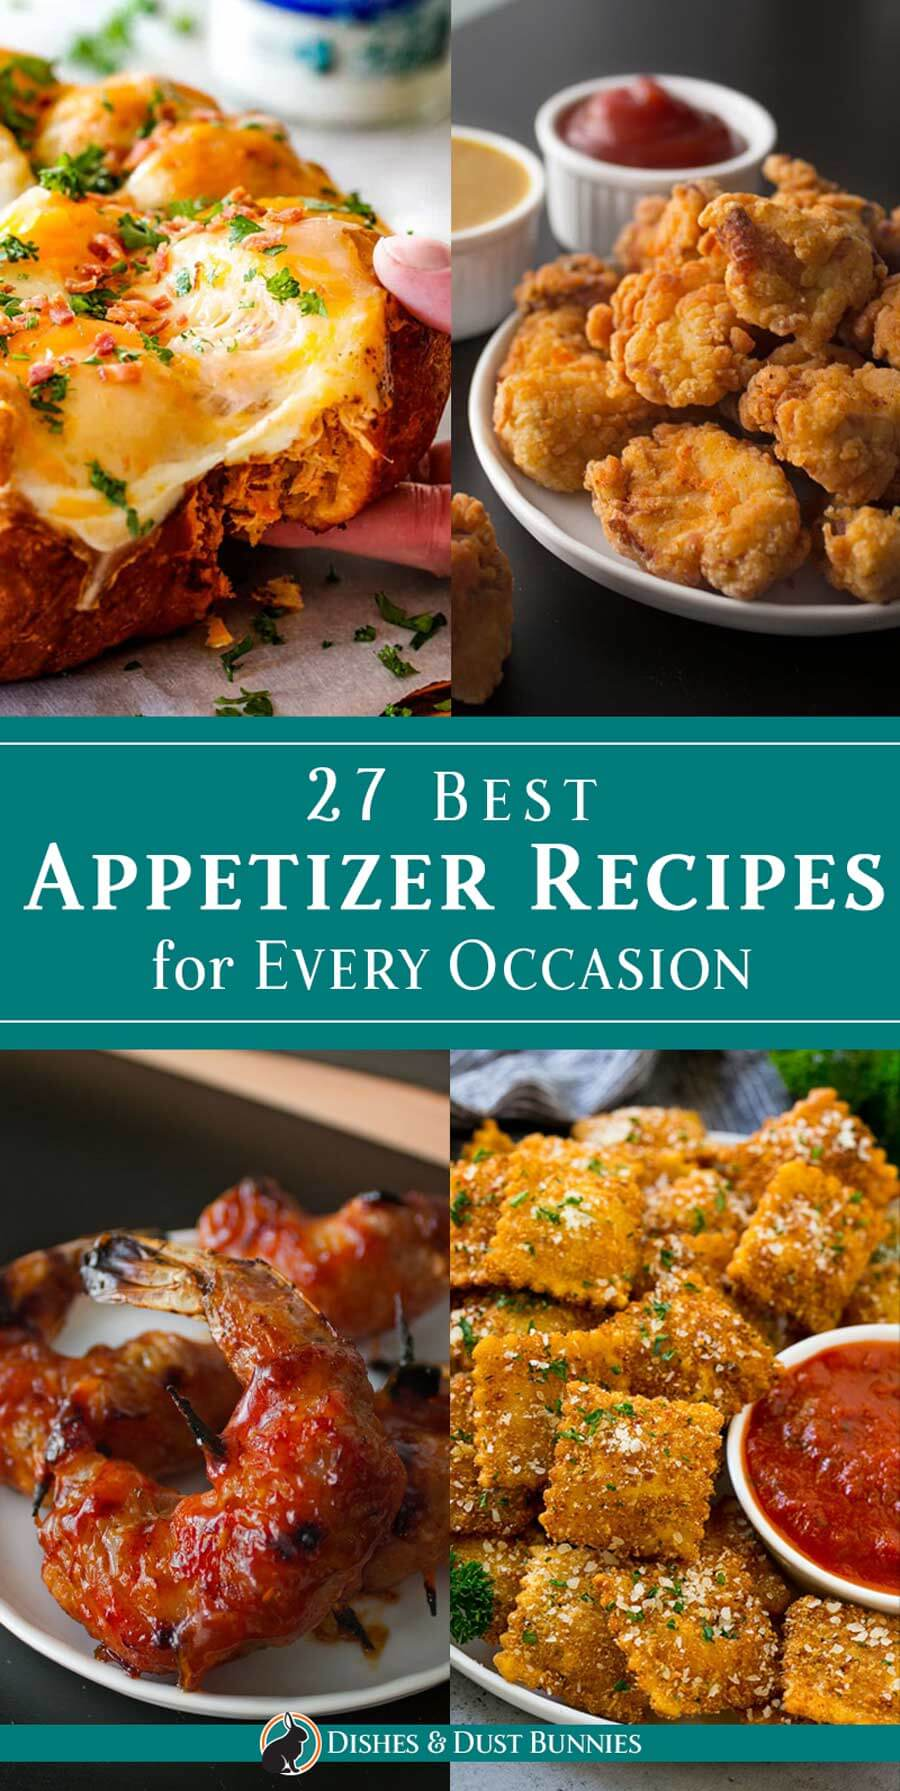 27 Best Appetizer Recipes for Every Occasion